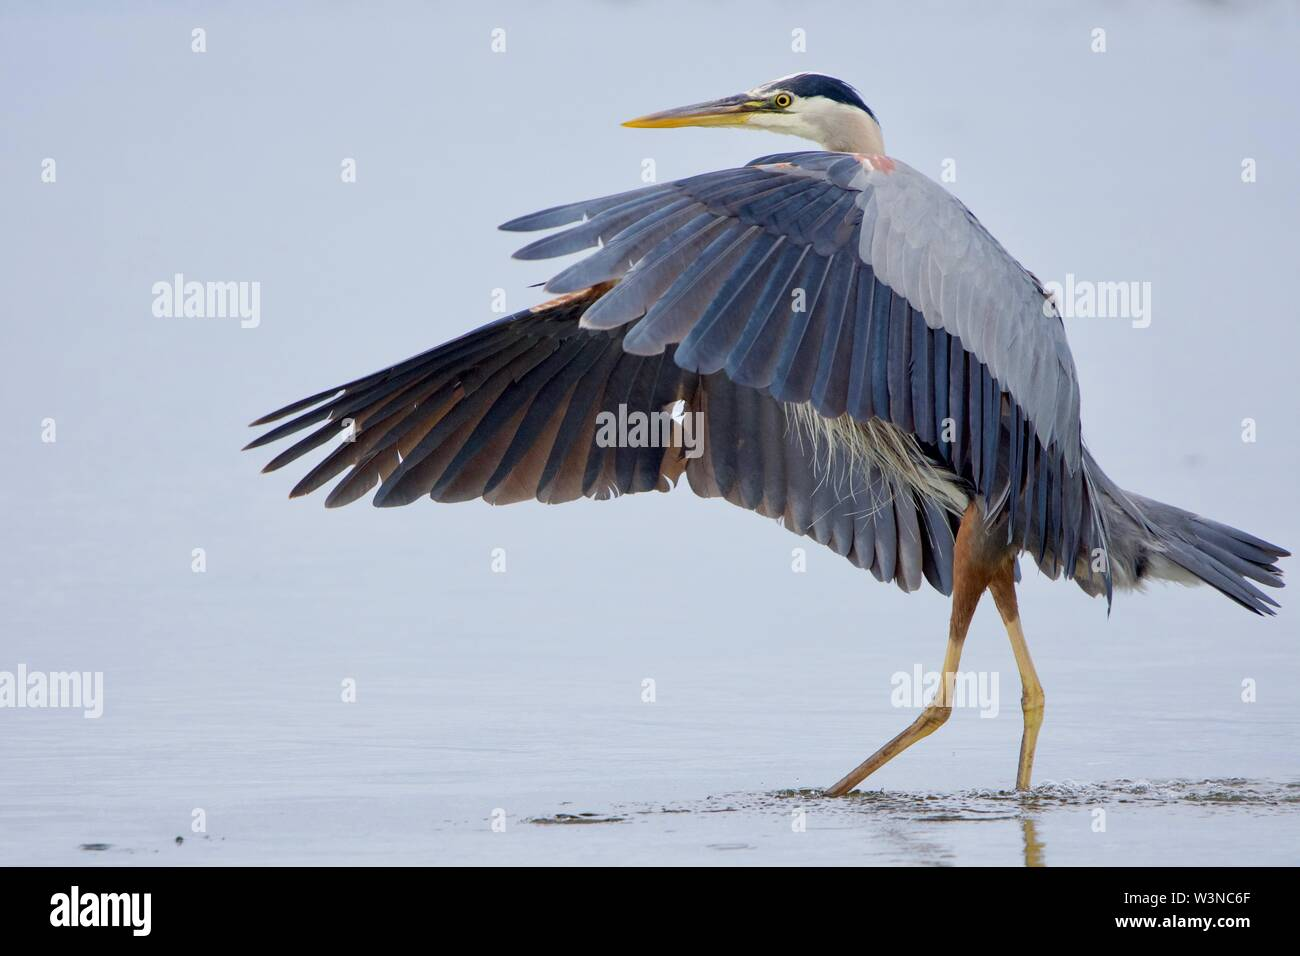 Great blue heron looks like a dancer with its wings extended forward, Witty's Lagoon,  Vancouver Island, British Columbia - Stock Image